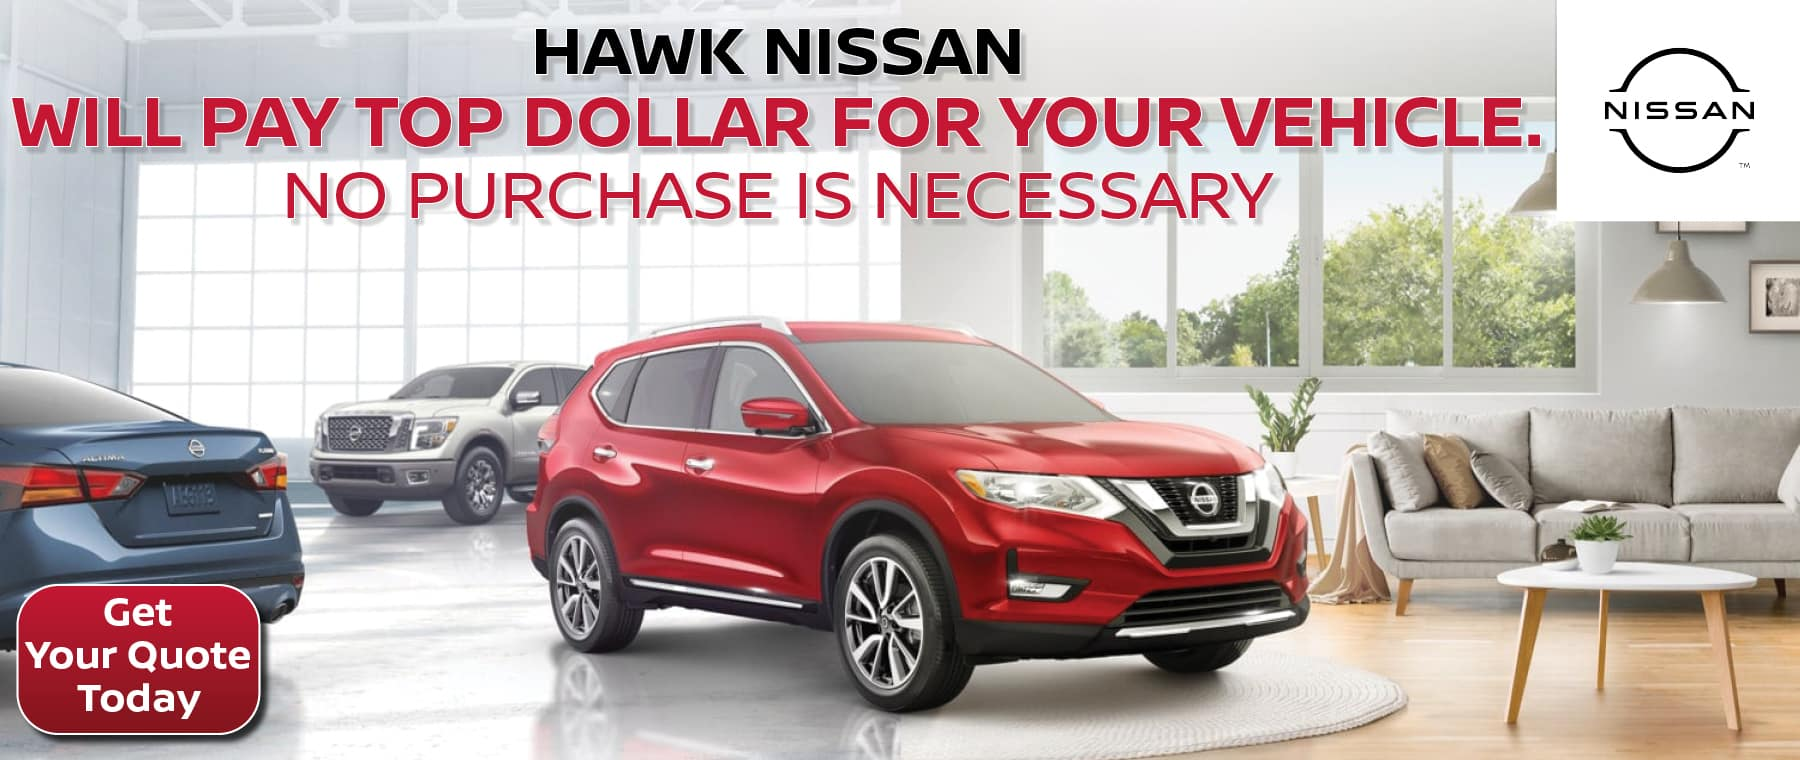 We'll Pay Top Dollar For Your Vehicle | Hawk Nissan of St. Charles